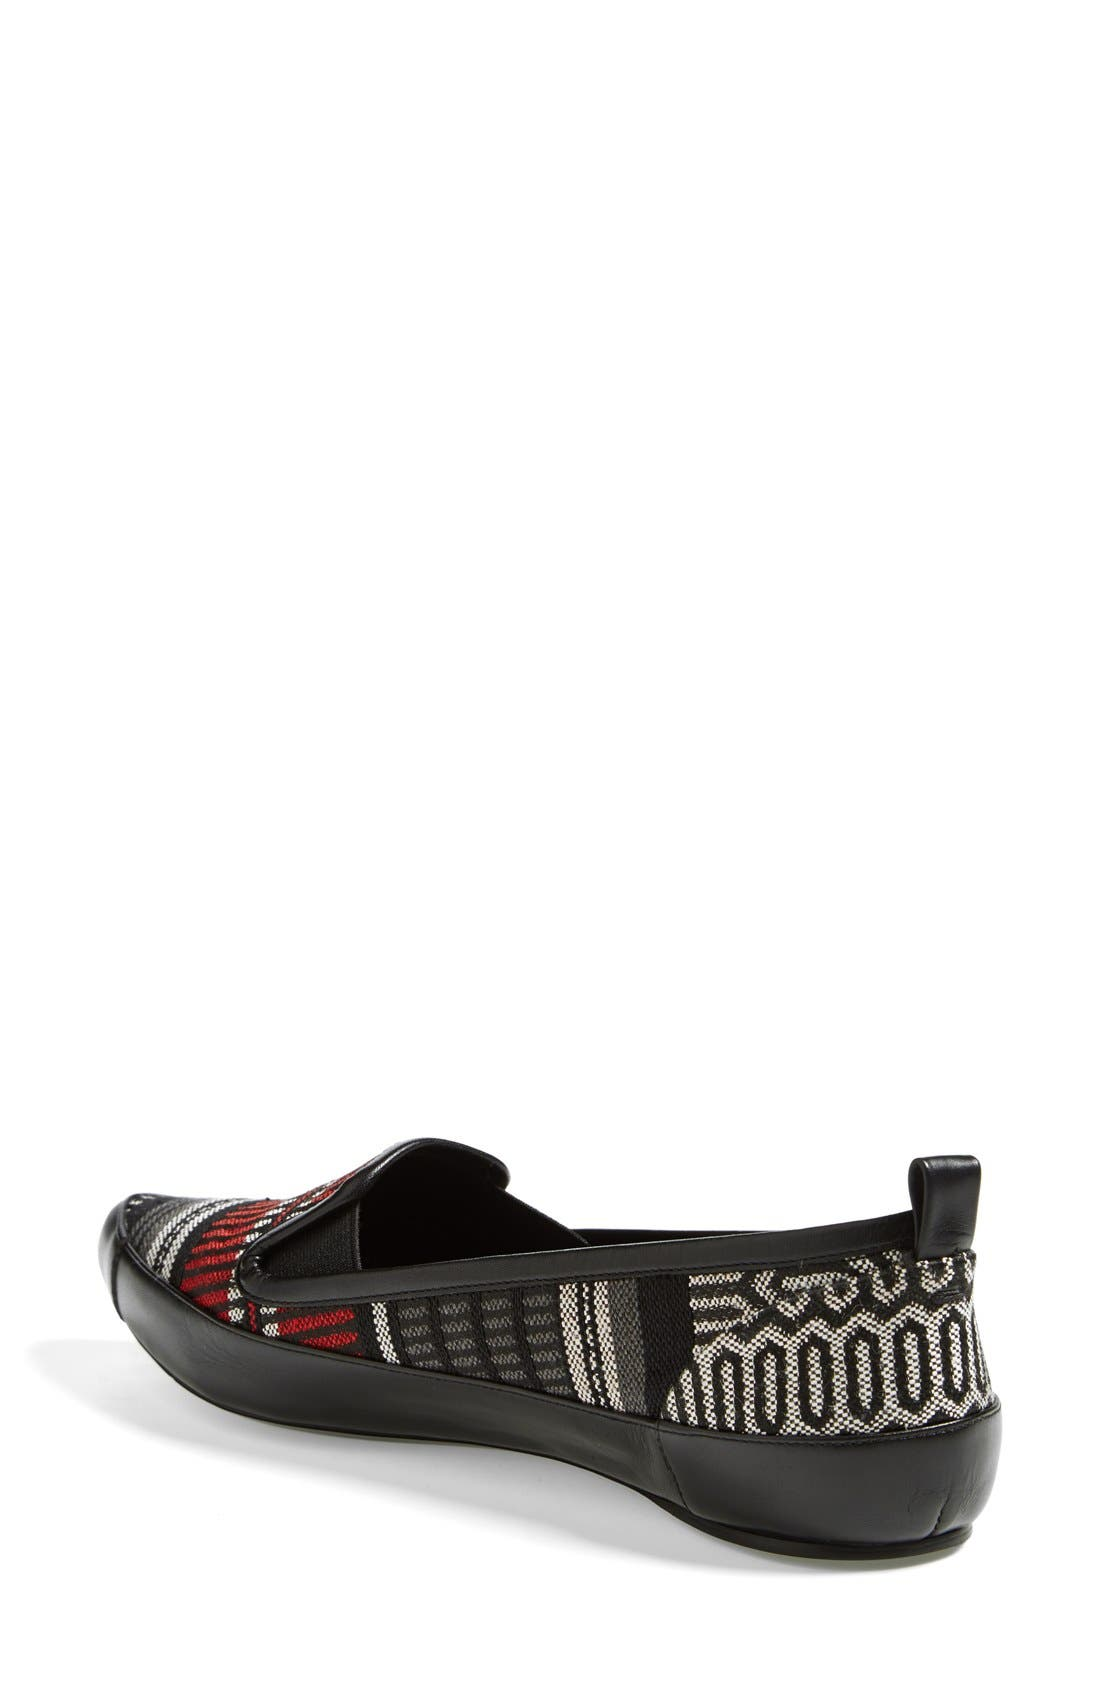 Alternate Image 2  - Proenza Schouler Pointy Toe Moccasin